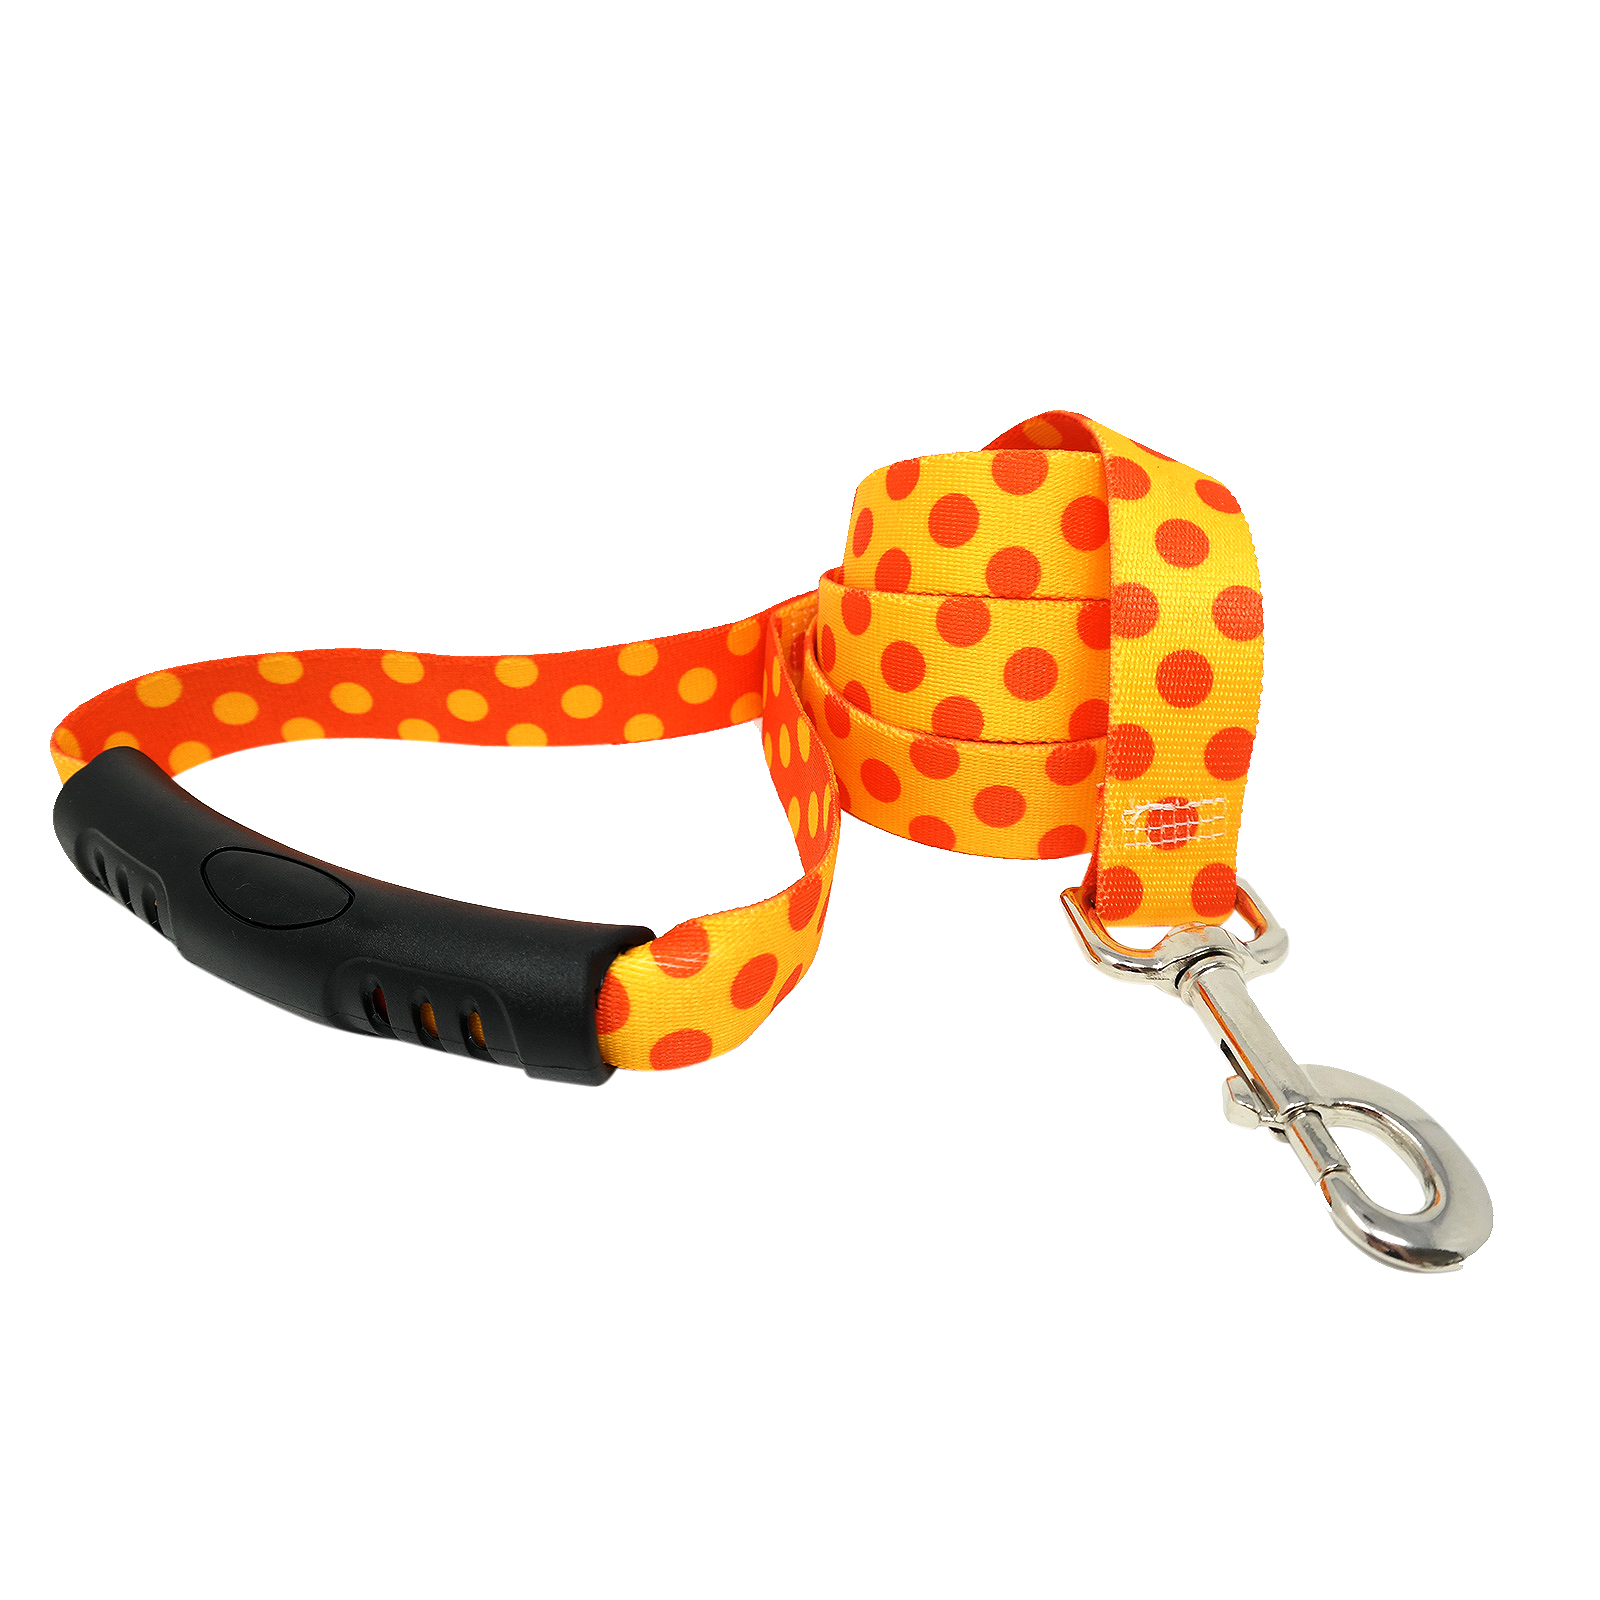 Goldenrod & Orange Polka EZ-Lead